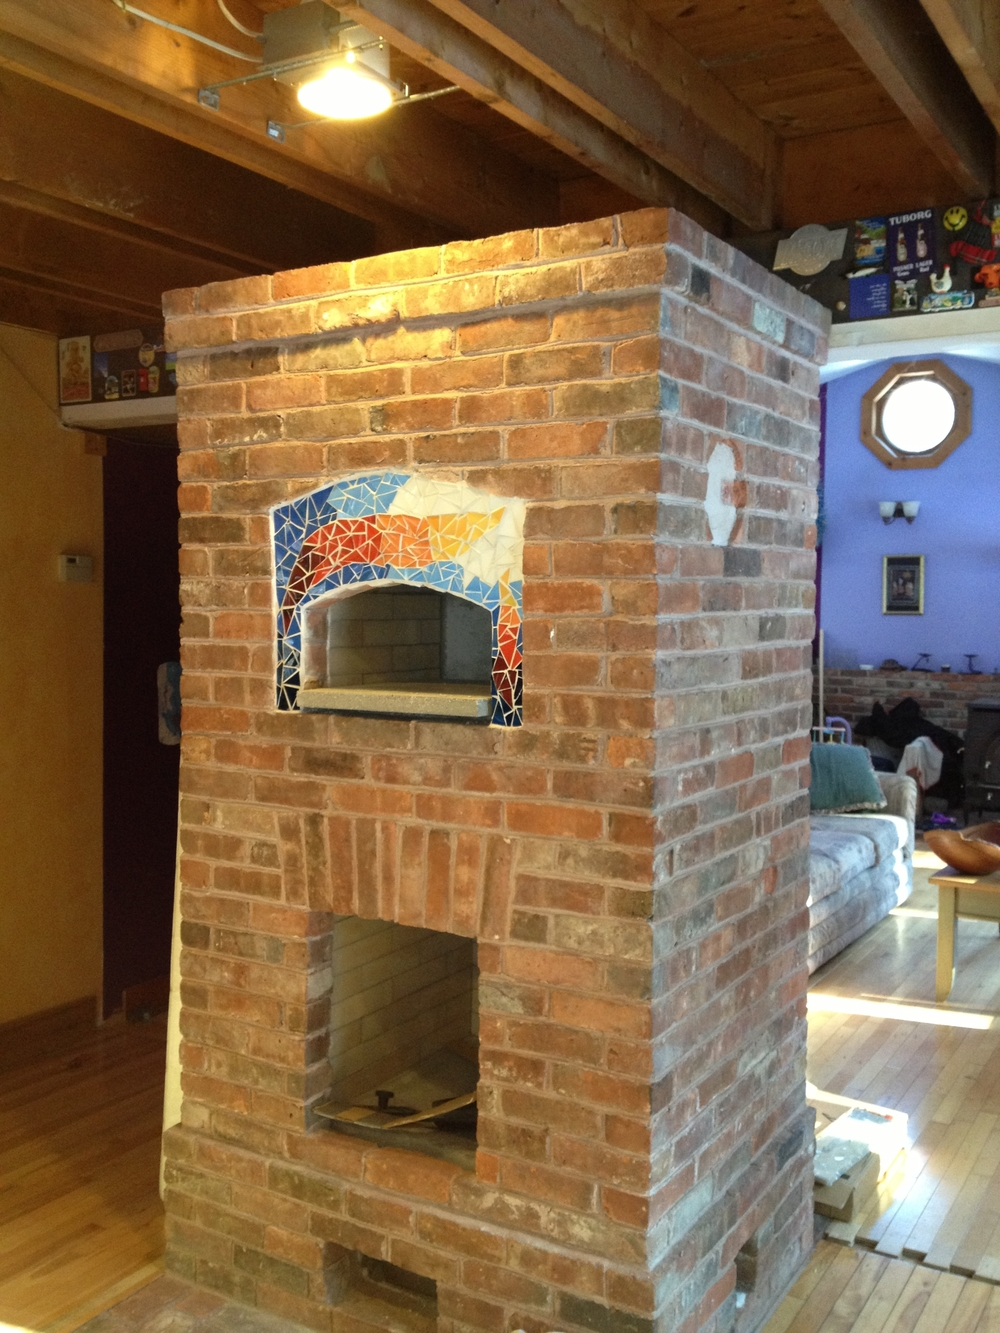 Masonry Heater with glass mosaic made by Peter Muller, which I installed.